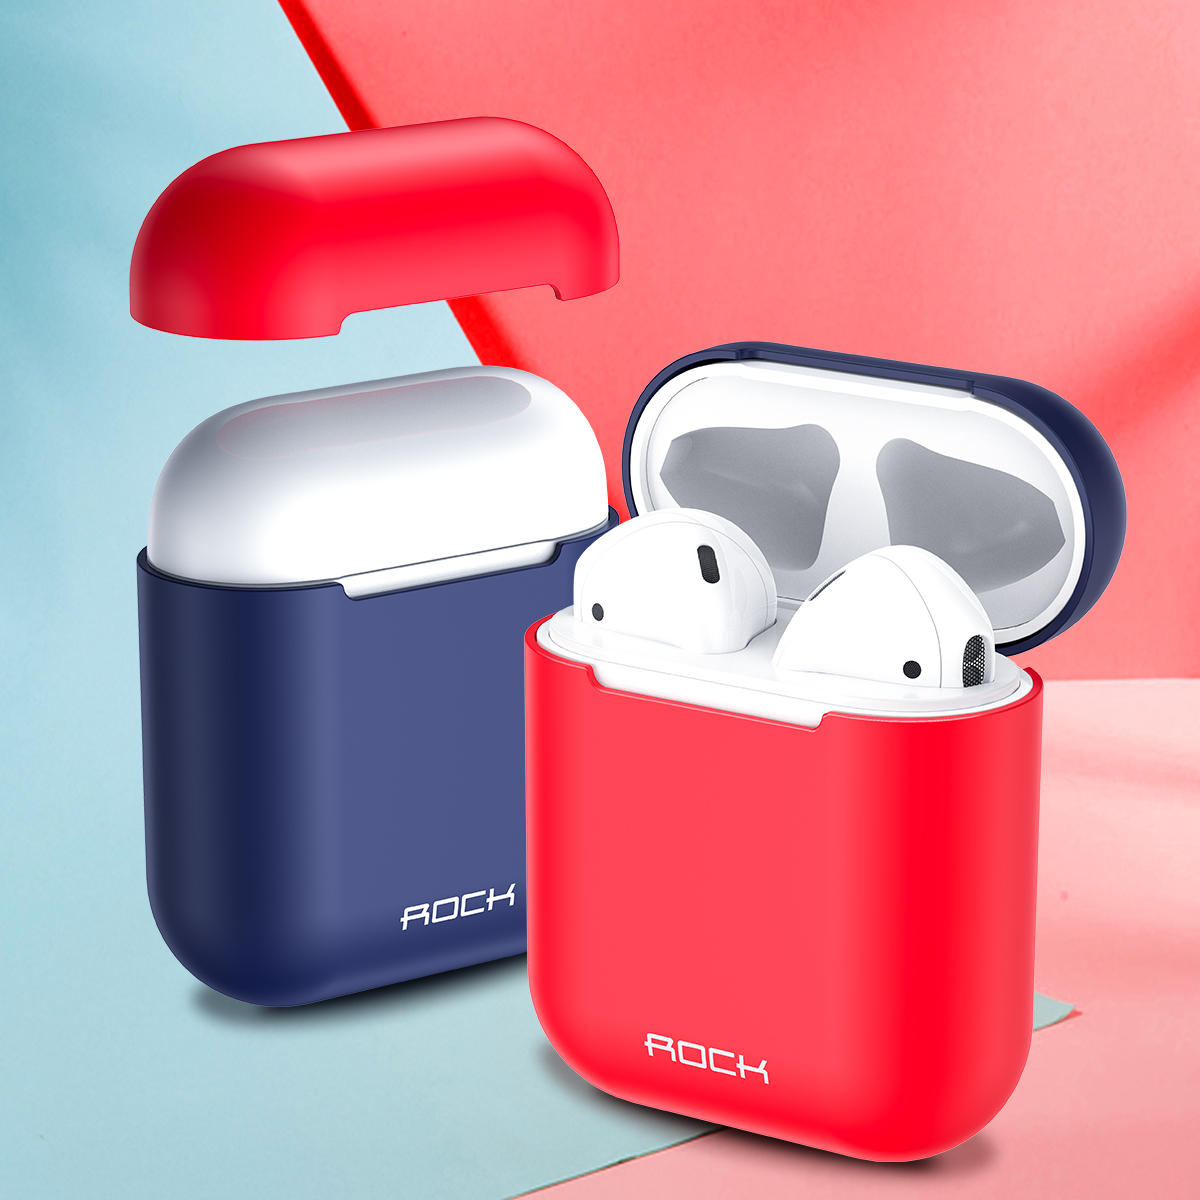 Rock Slim Silicone Protective Case For Apple AirPods (2016) / Apple AirPods 2 (2019)